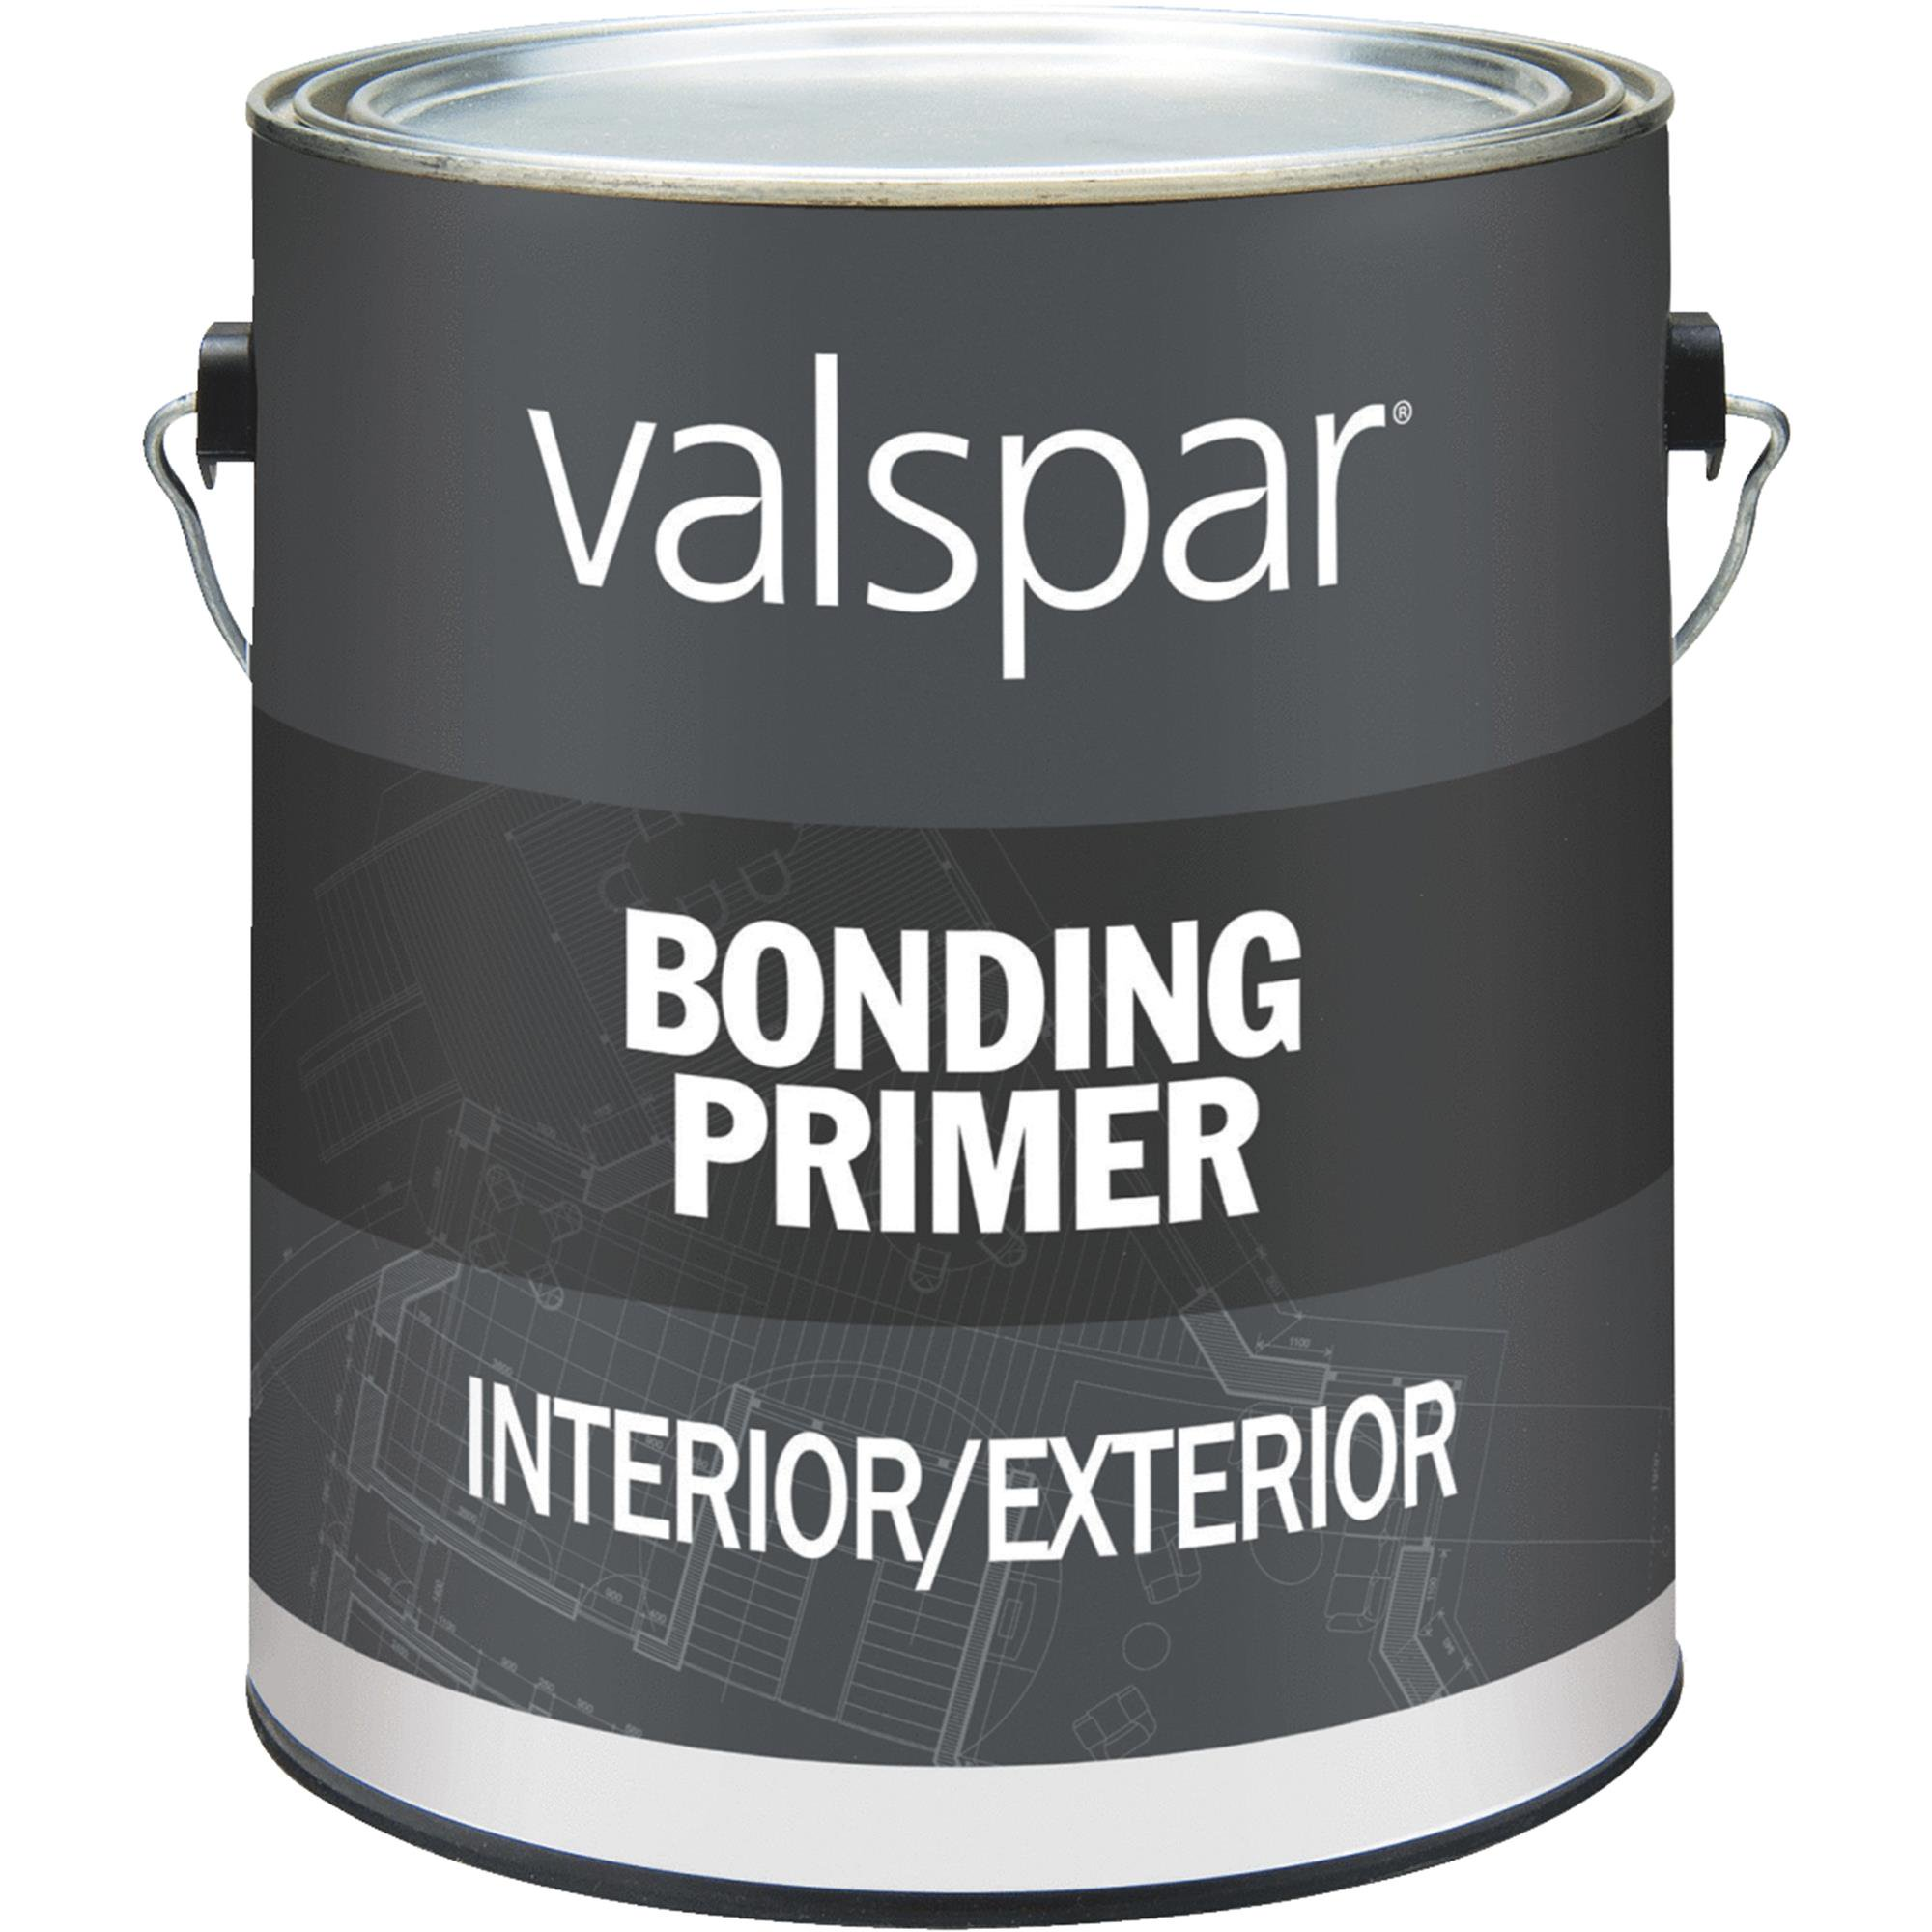 Valspar Interior/Exterior Stain Blocking Bonding Primer